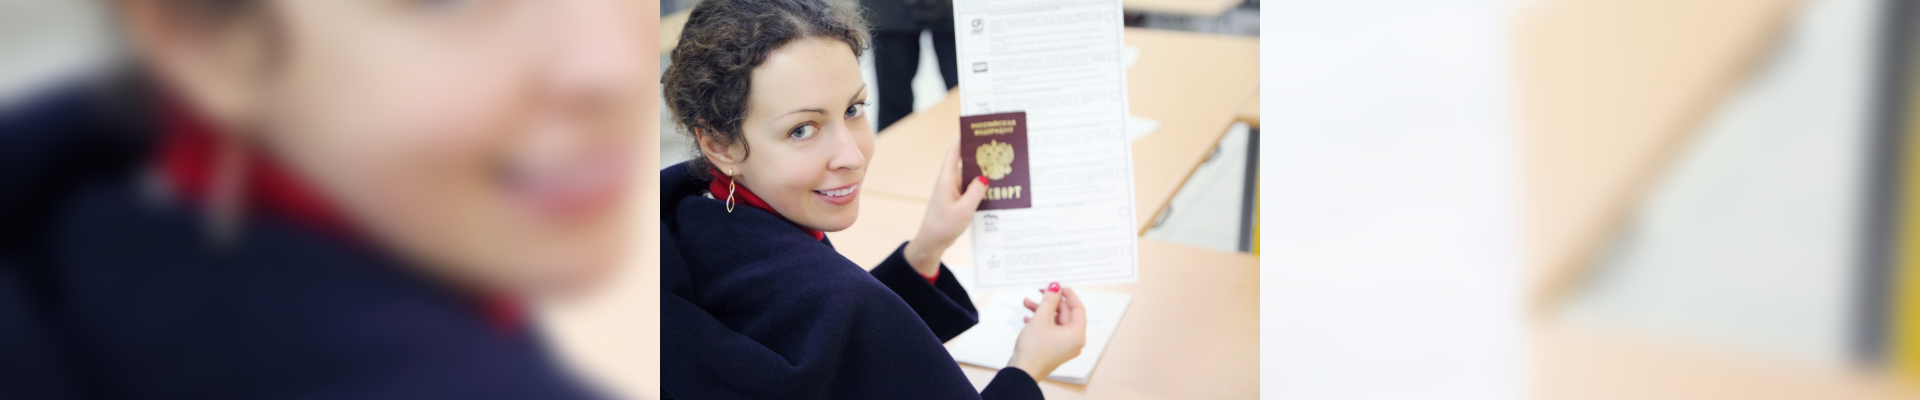 tourist holding her passport